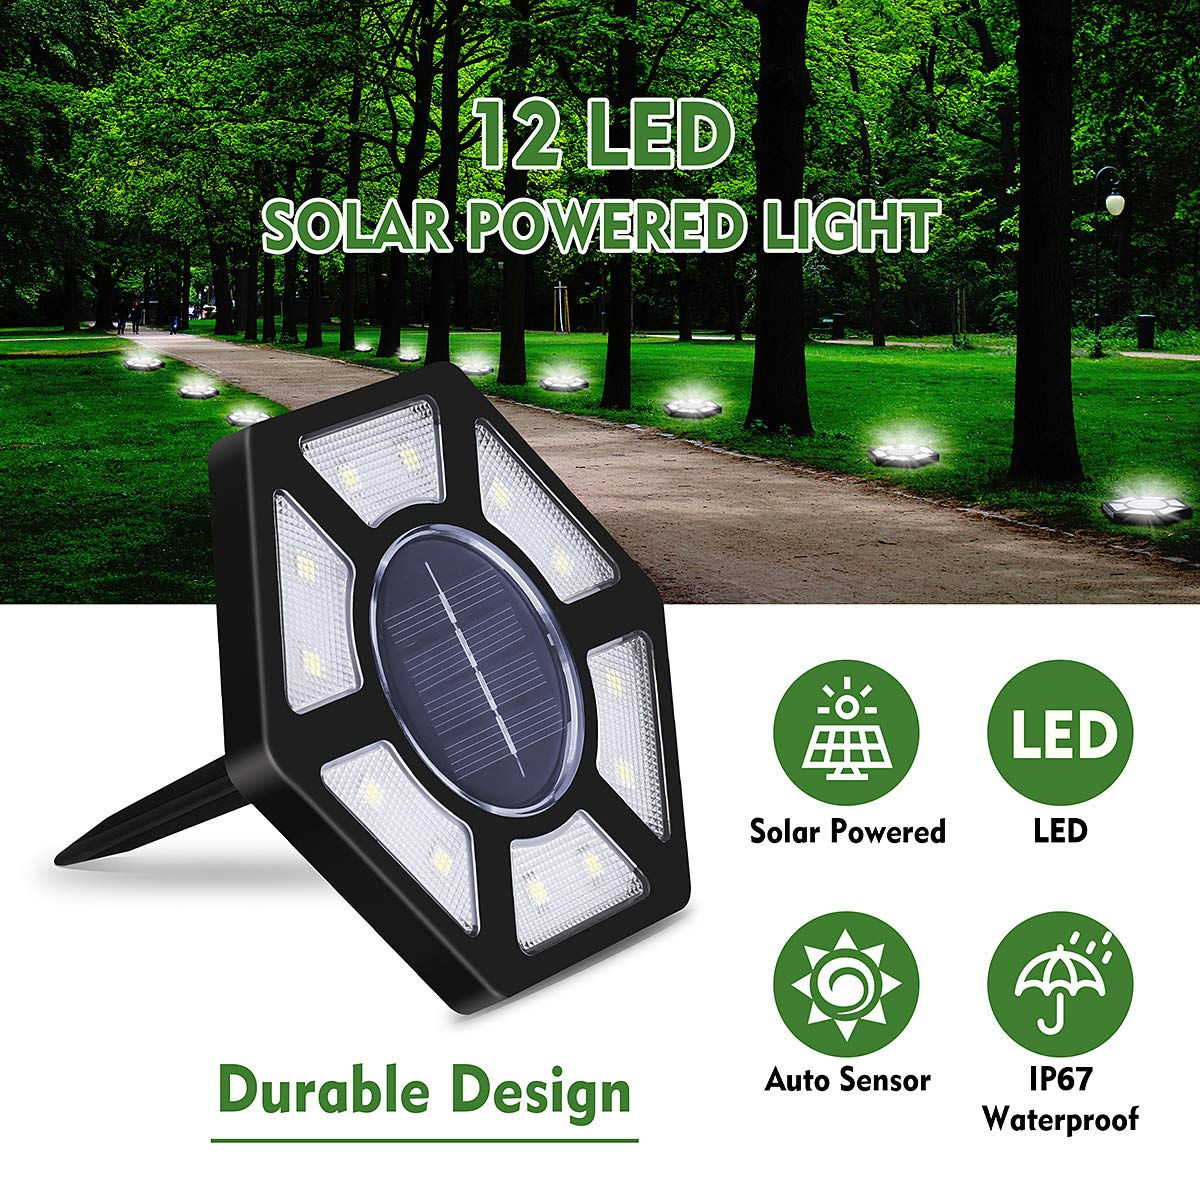 Solar Ground Lights 12 LED Outdoor Solar in-Ground Lights IP67 Waterproof Solar Lights with Light Sensor Solar Powered Landscape Light for Garden Patio Pathway Yard Lawn,4 Packs